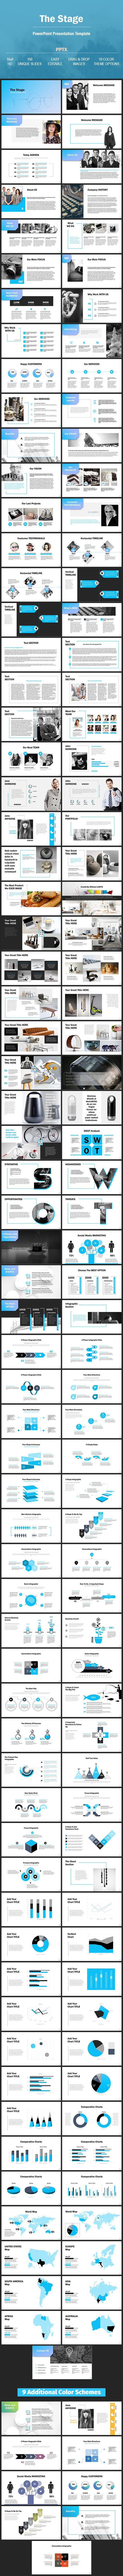 The Stage - PowerPoint Presentation Template